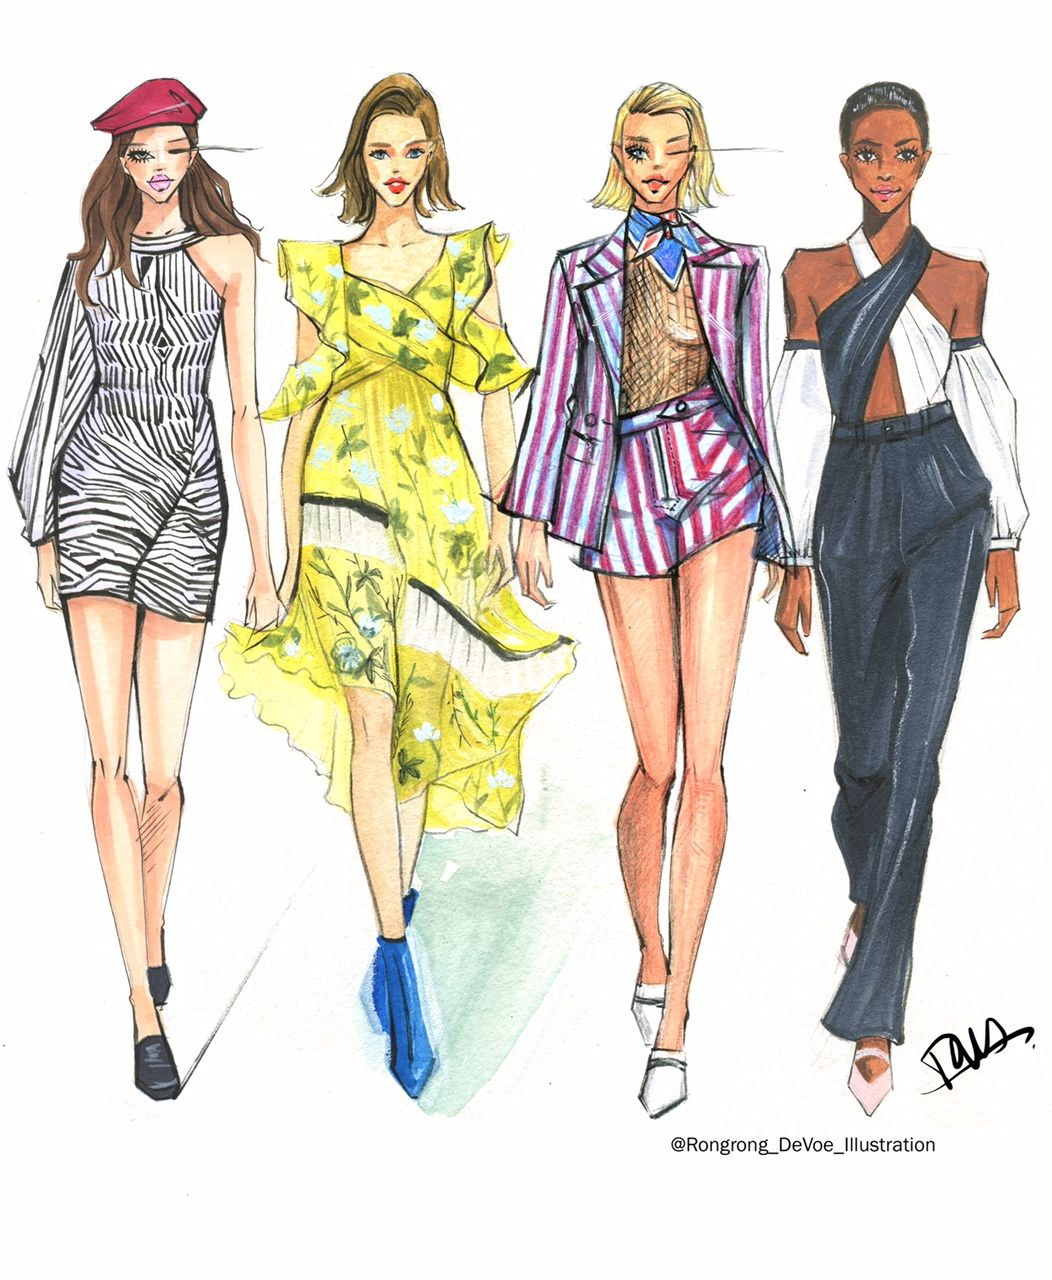 Fashion Sketches Inspired By New York Fashion Week Ss18 Season Fashion And Beauty Illustrator Rongrong Devoe Fashion Sketches Fashion Illustration Fashion Design